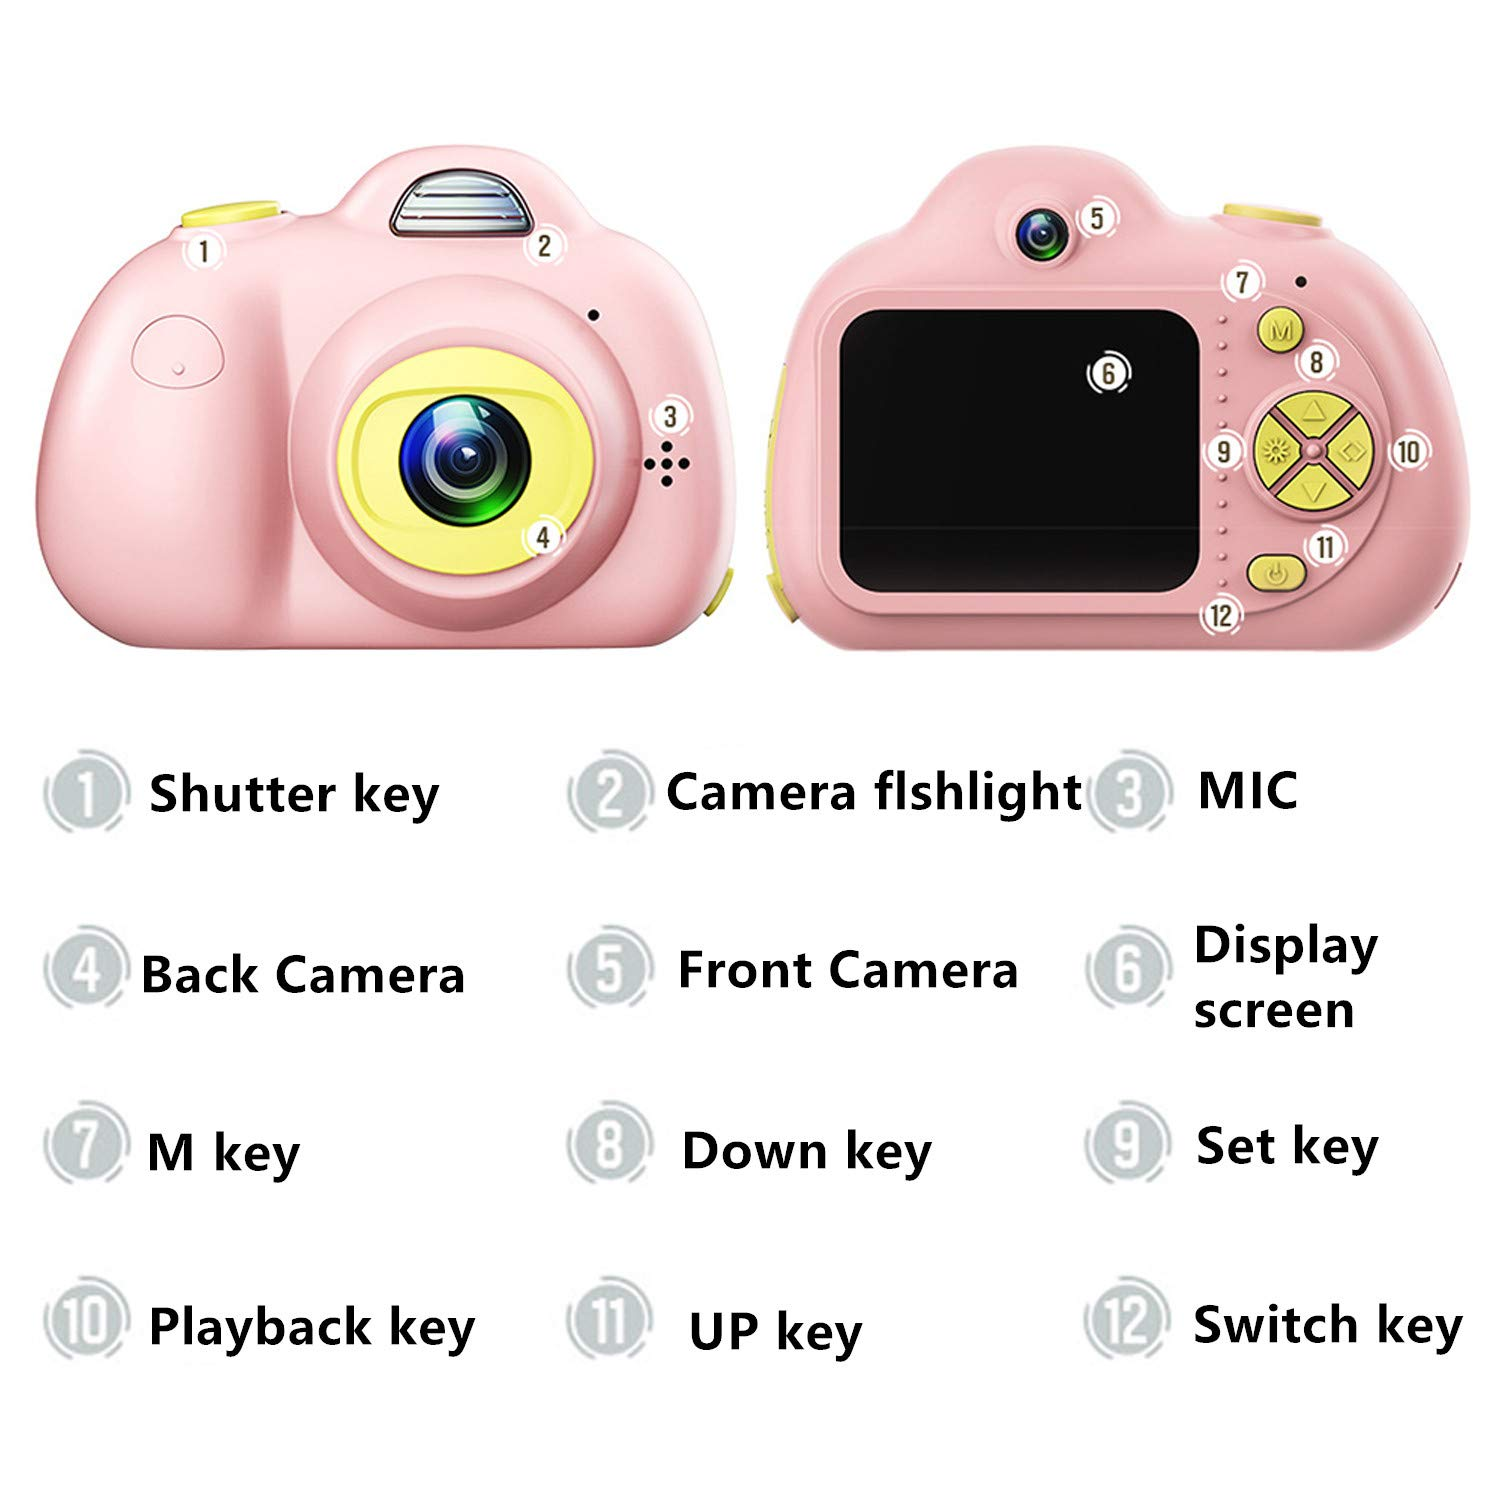 ESROVER Kids Digital Camera,2.0 Inch Screen 8MP Dual Shockproof Cameras Toys with Silicone Soft Cover Best Gifts Mini Selfie Camcorder for 4-8 Year Old Girls Boys Children by ESROVER (Image #2)